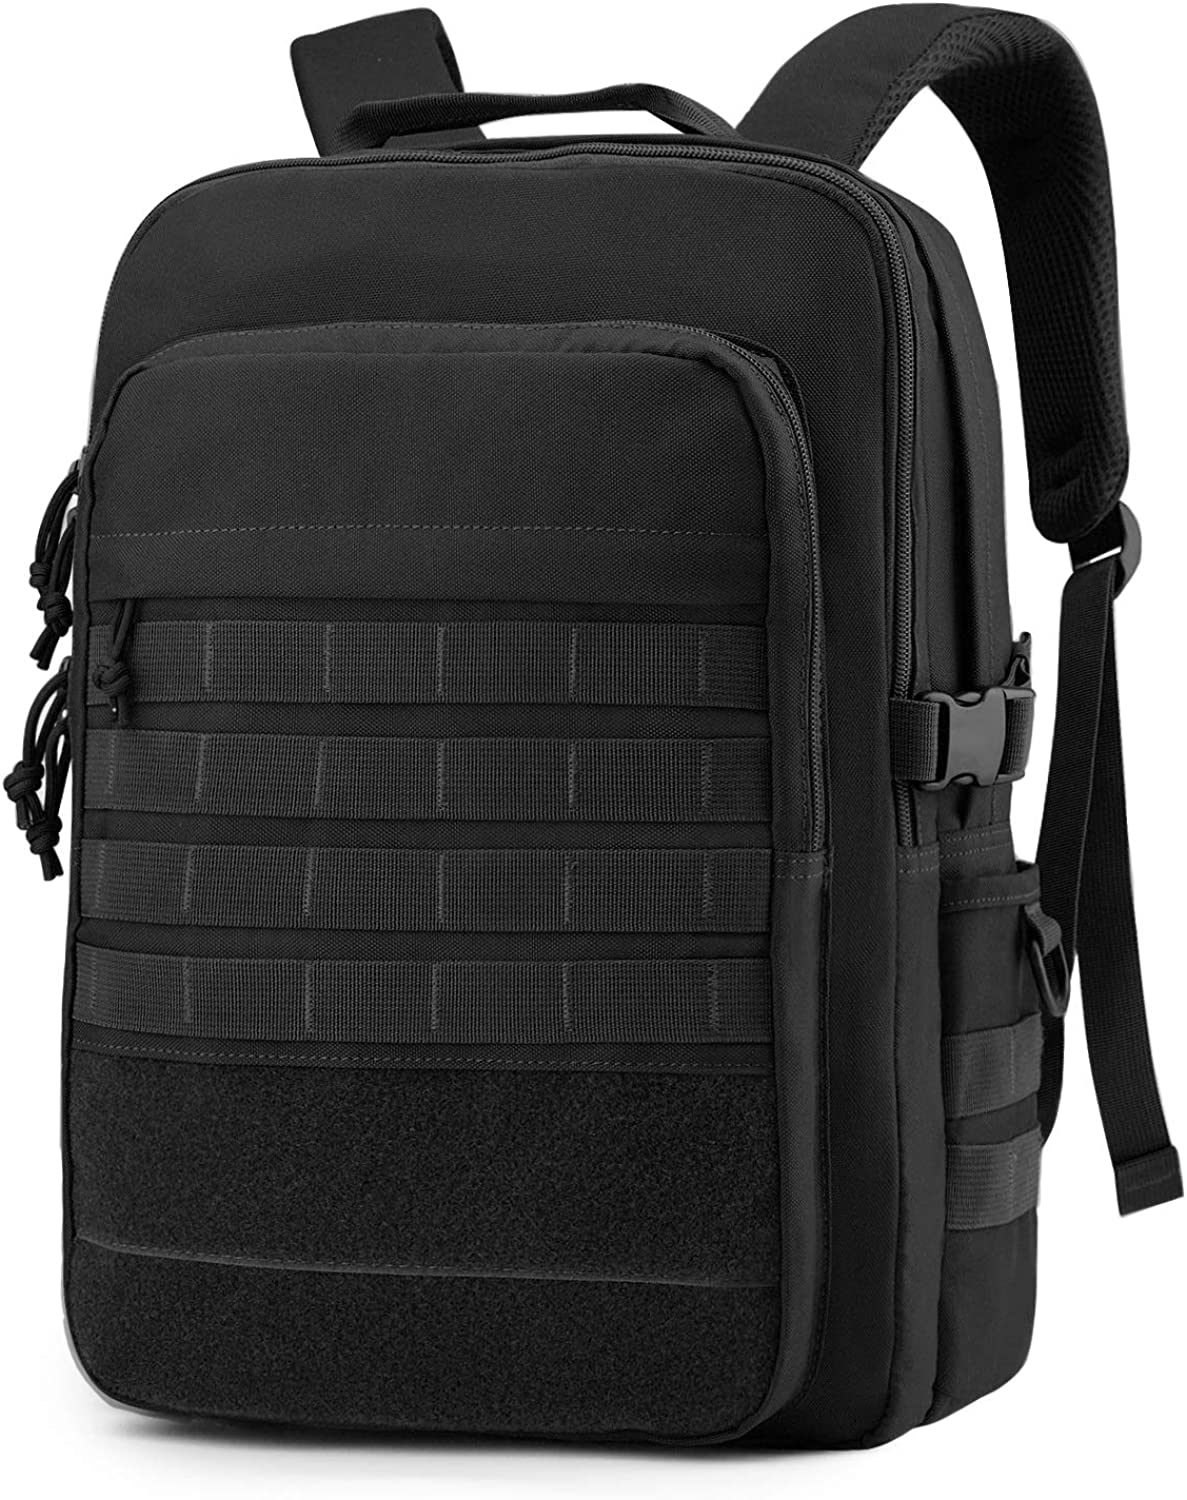 WindTook Unisex-Adult (Novelty and Luggage only) Laptop